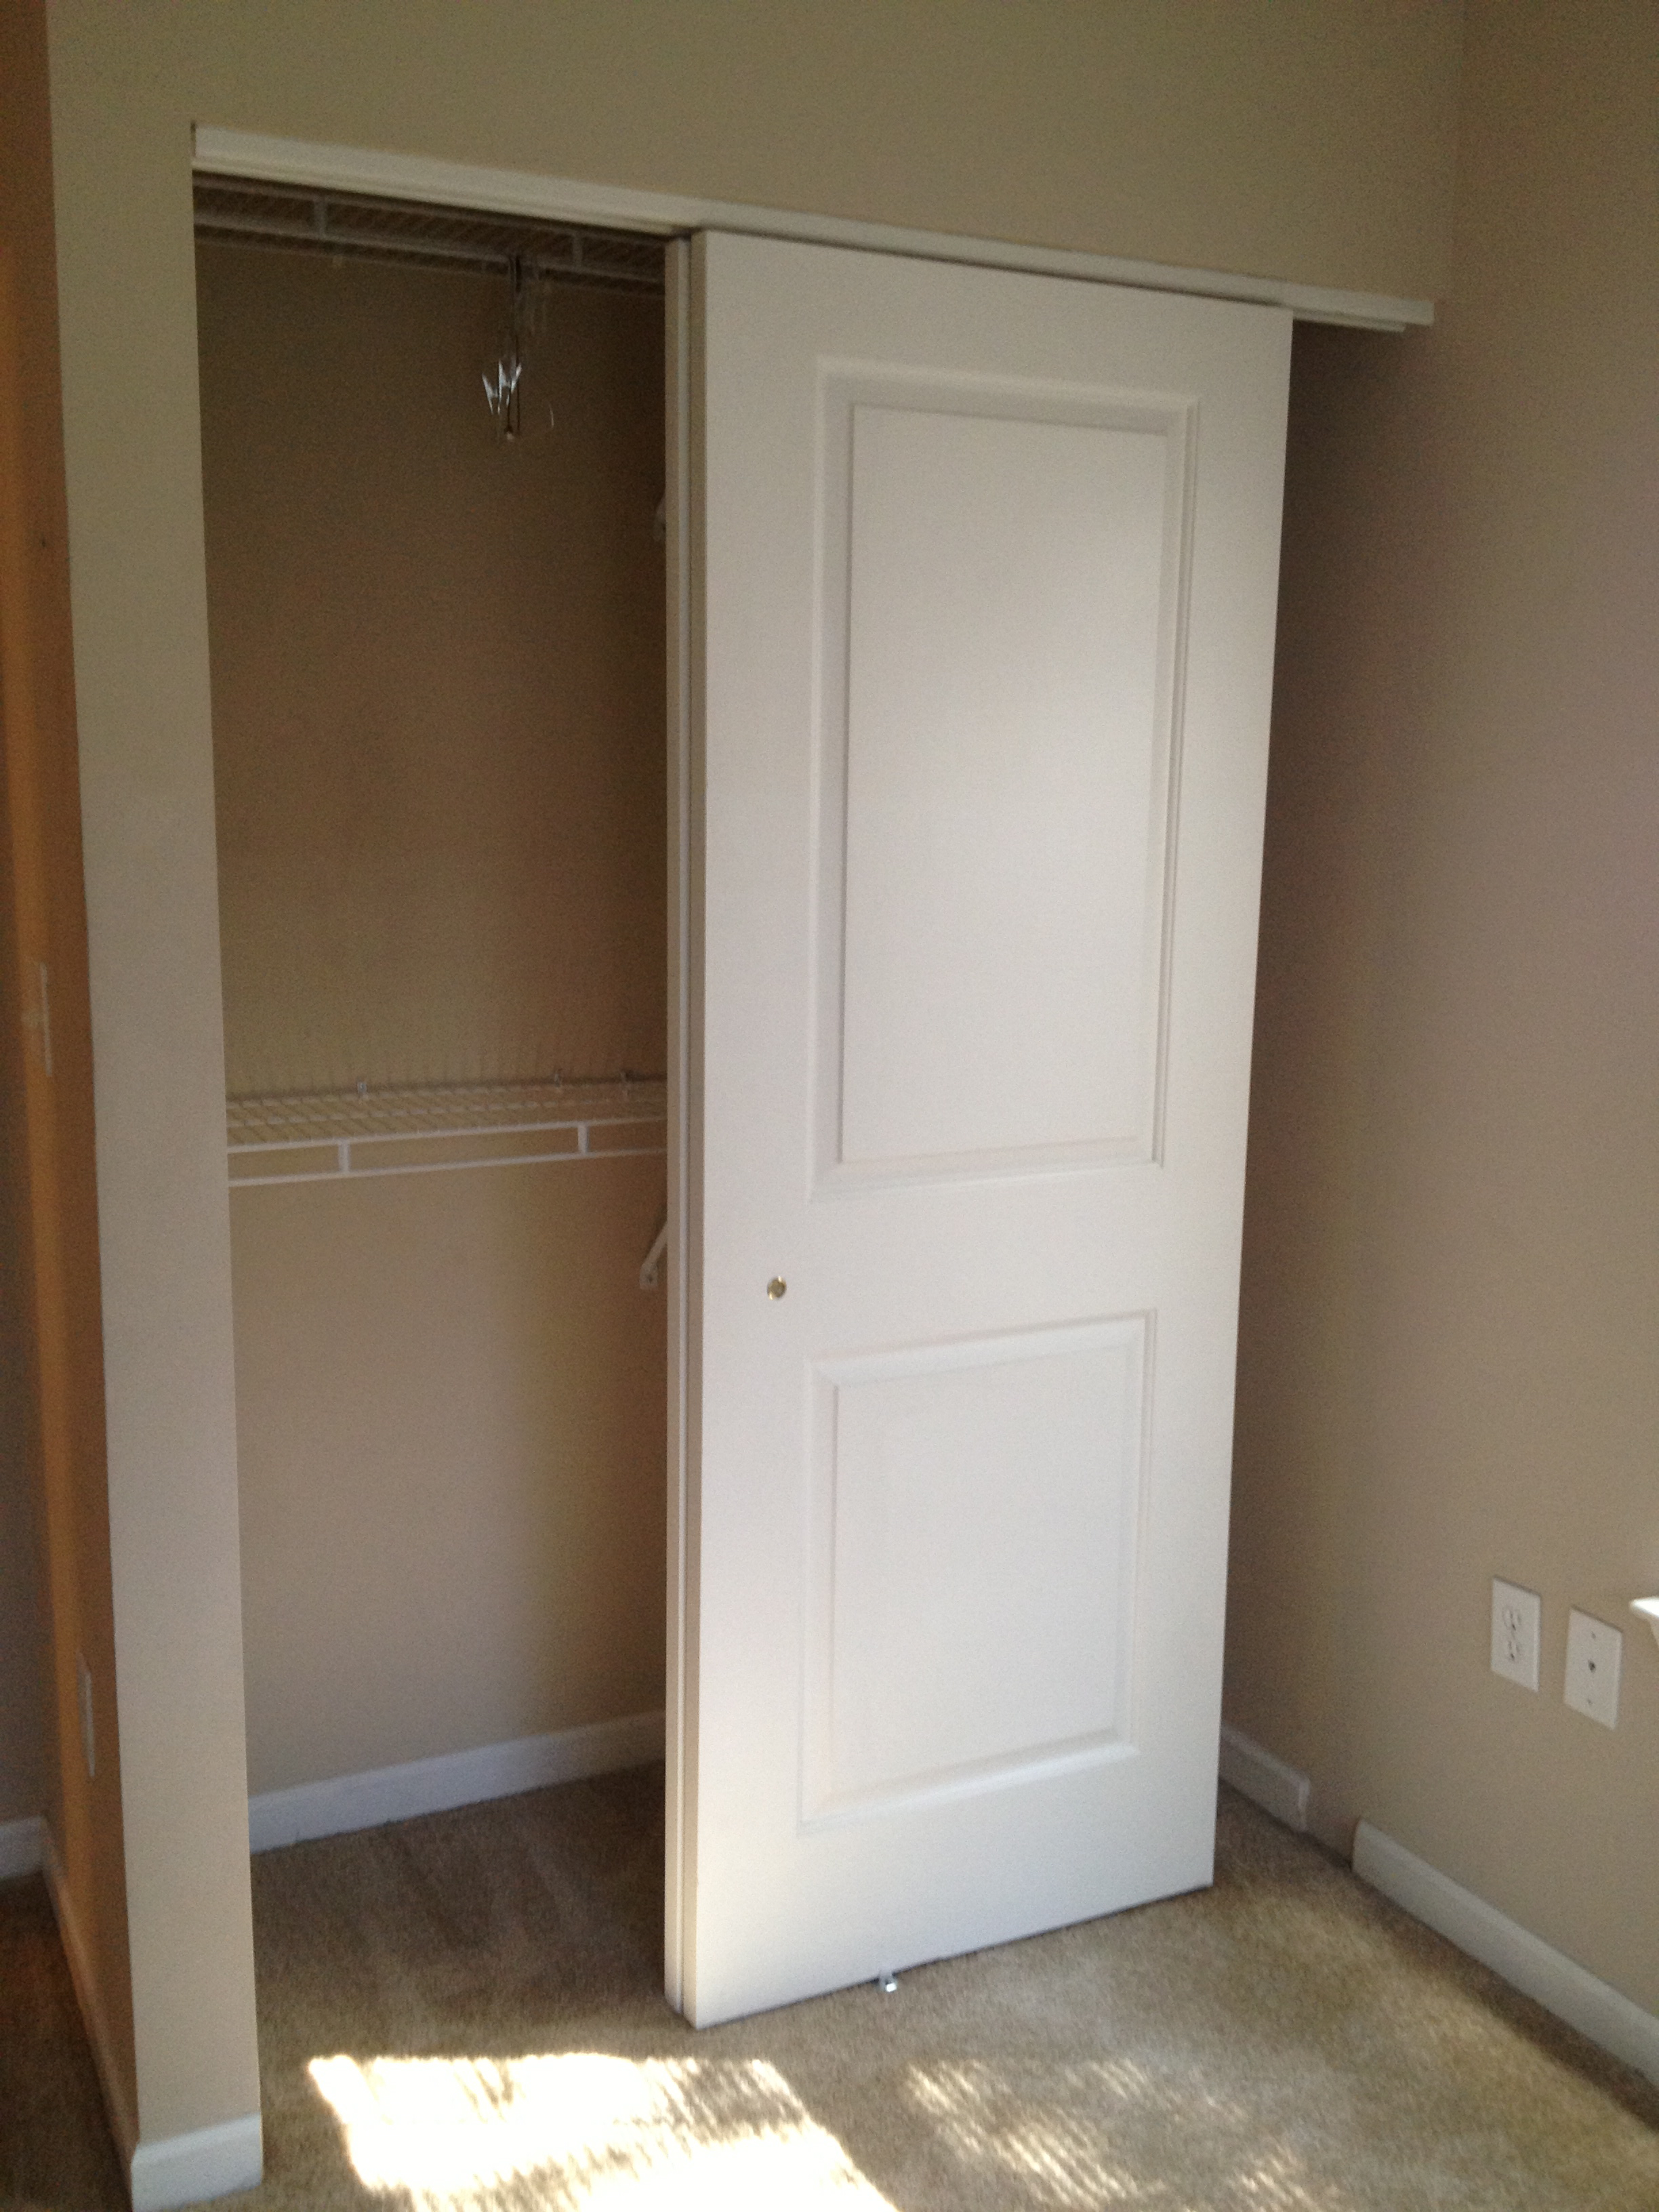 home depot doors interiordustytrailbookscom - Closet Designs Home Depot